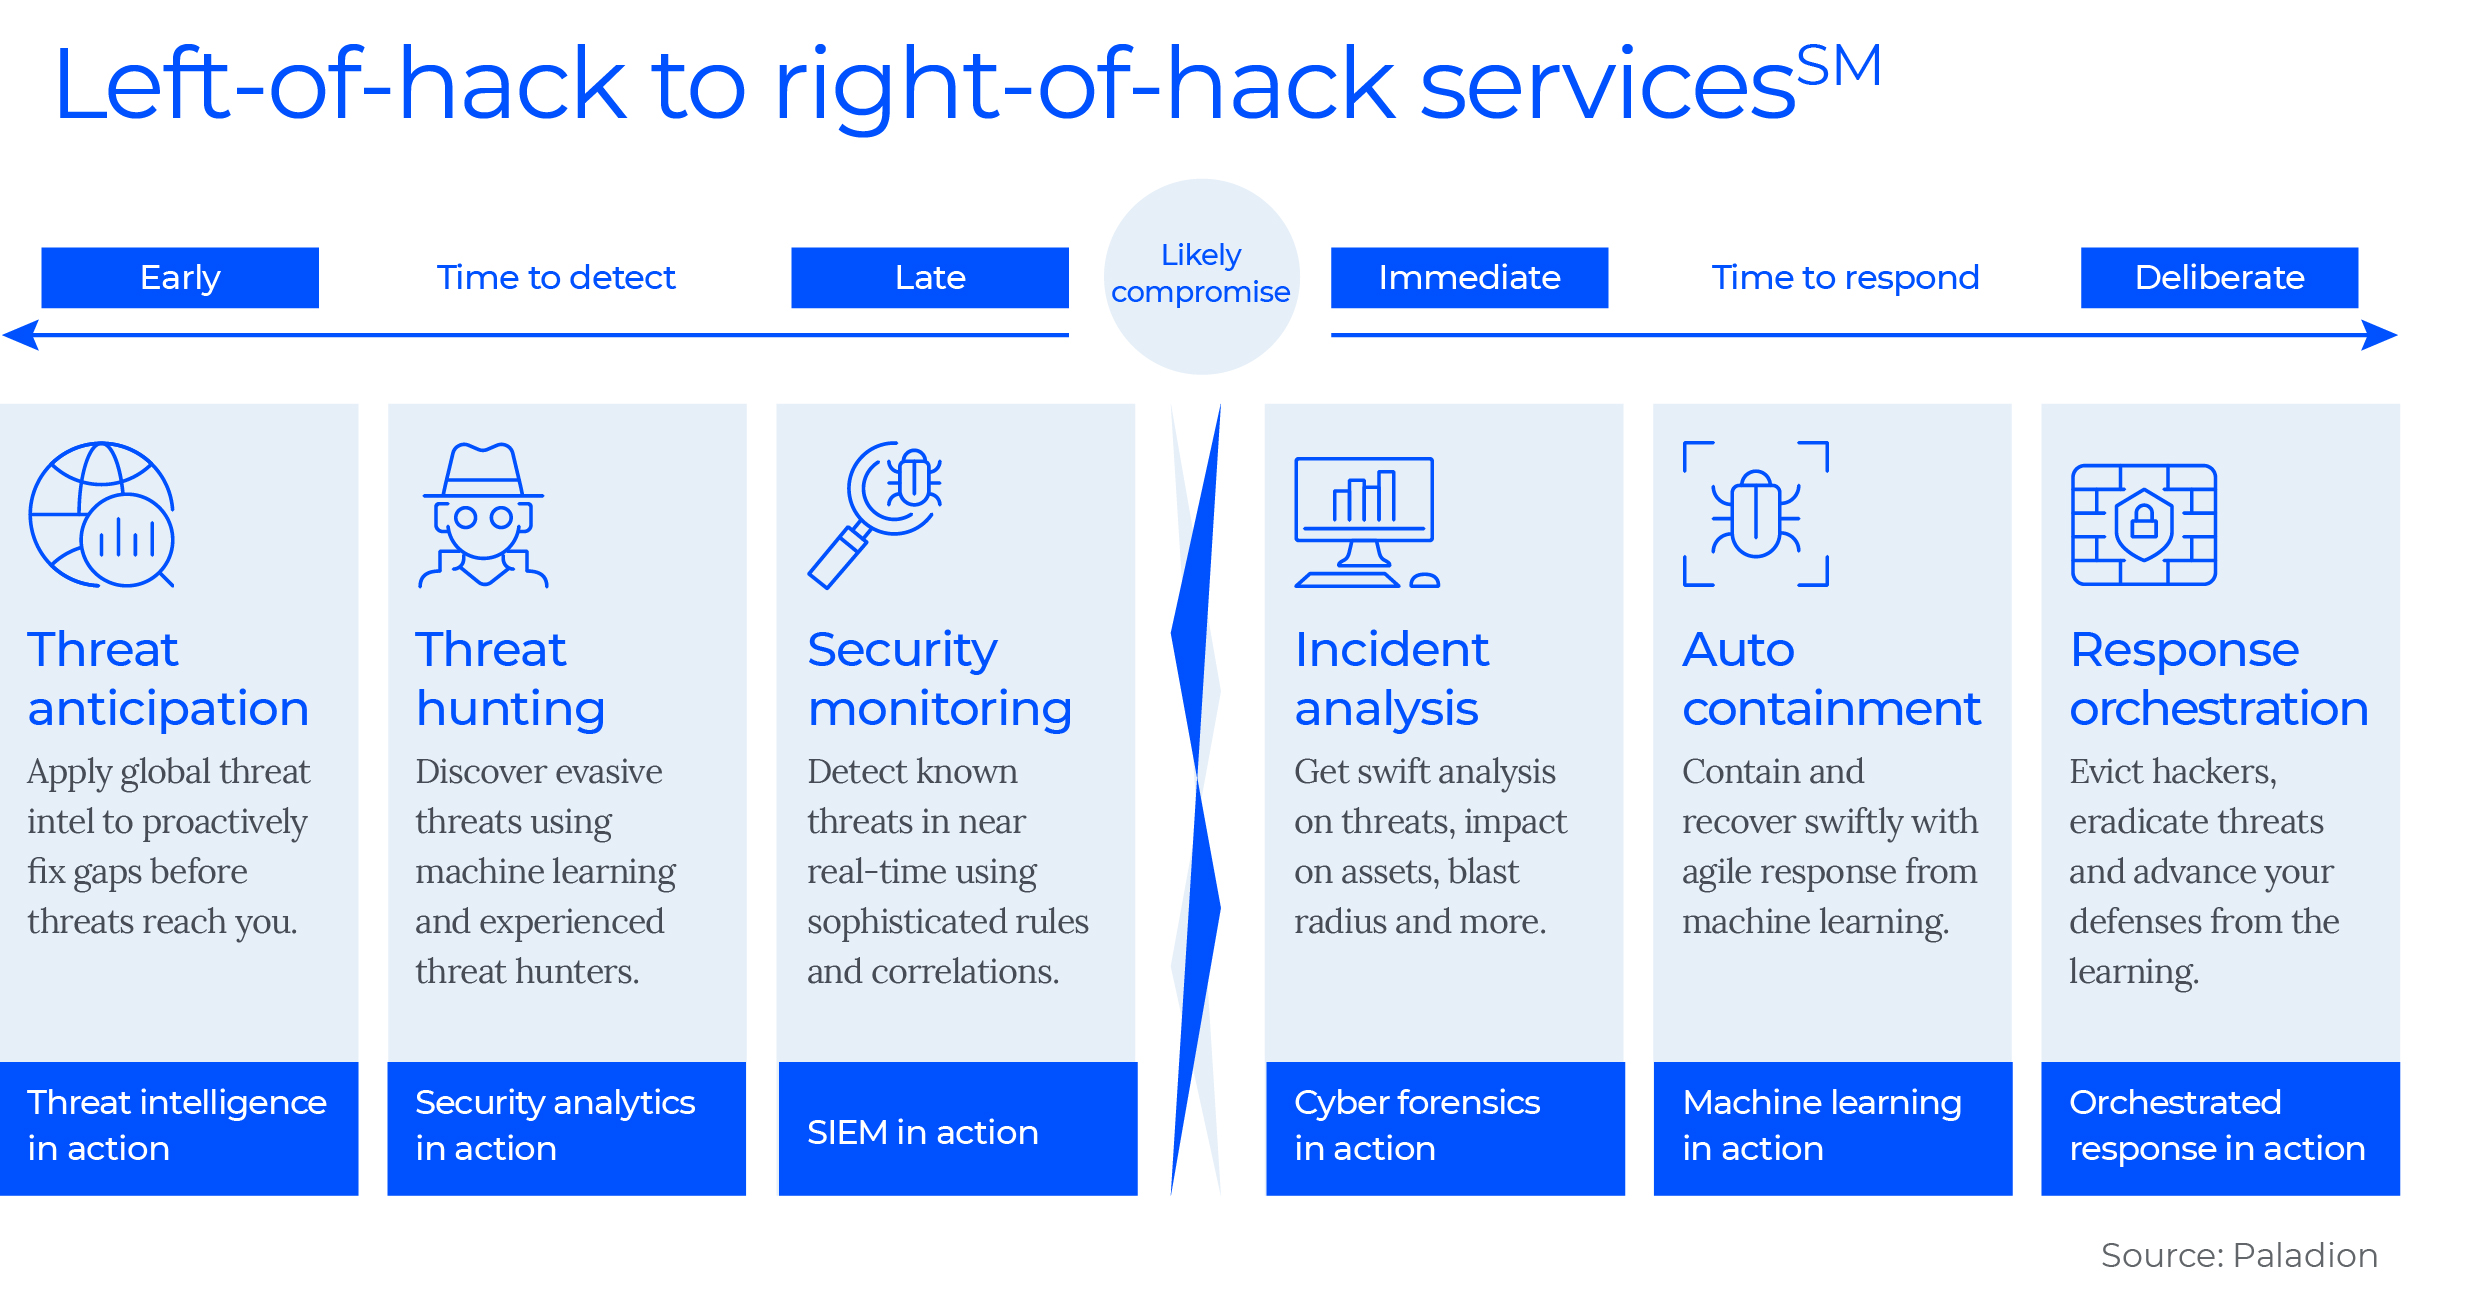 Left-of-hack and right-of-hack services